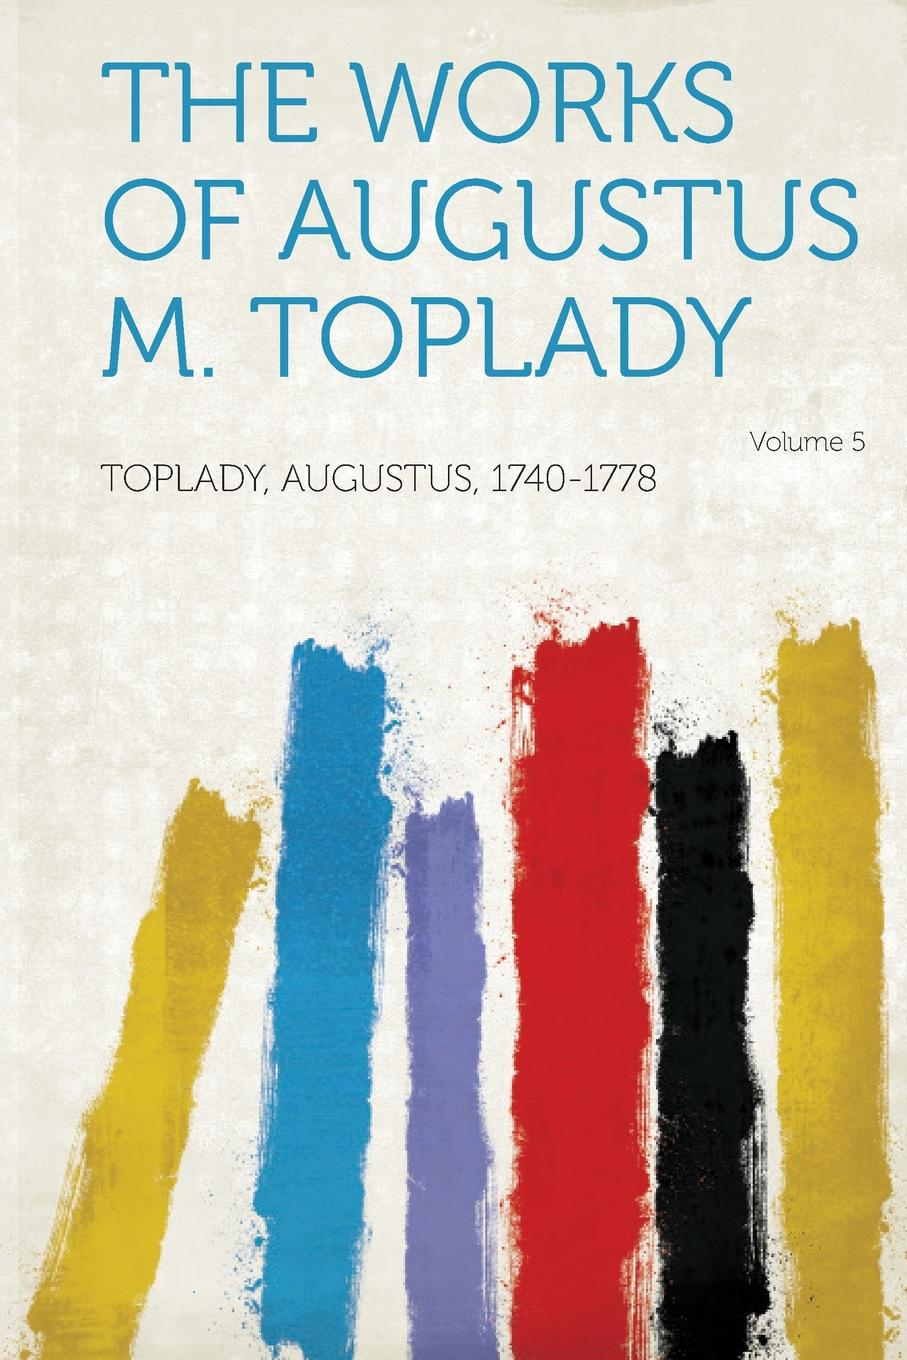 Toplady Augustus 1740-1778 The Works of Augustus M. Toplady Volume 5